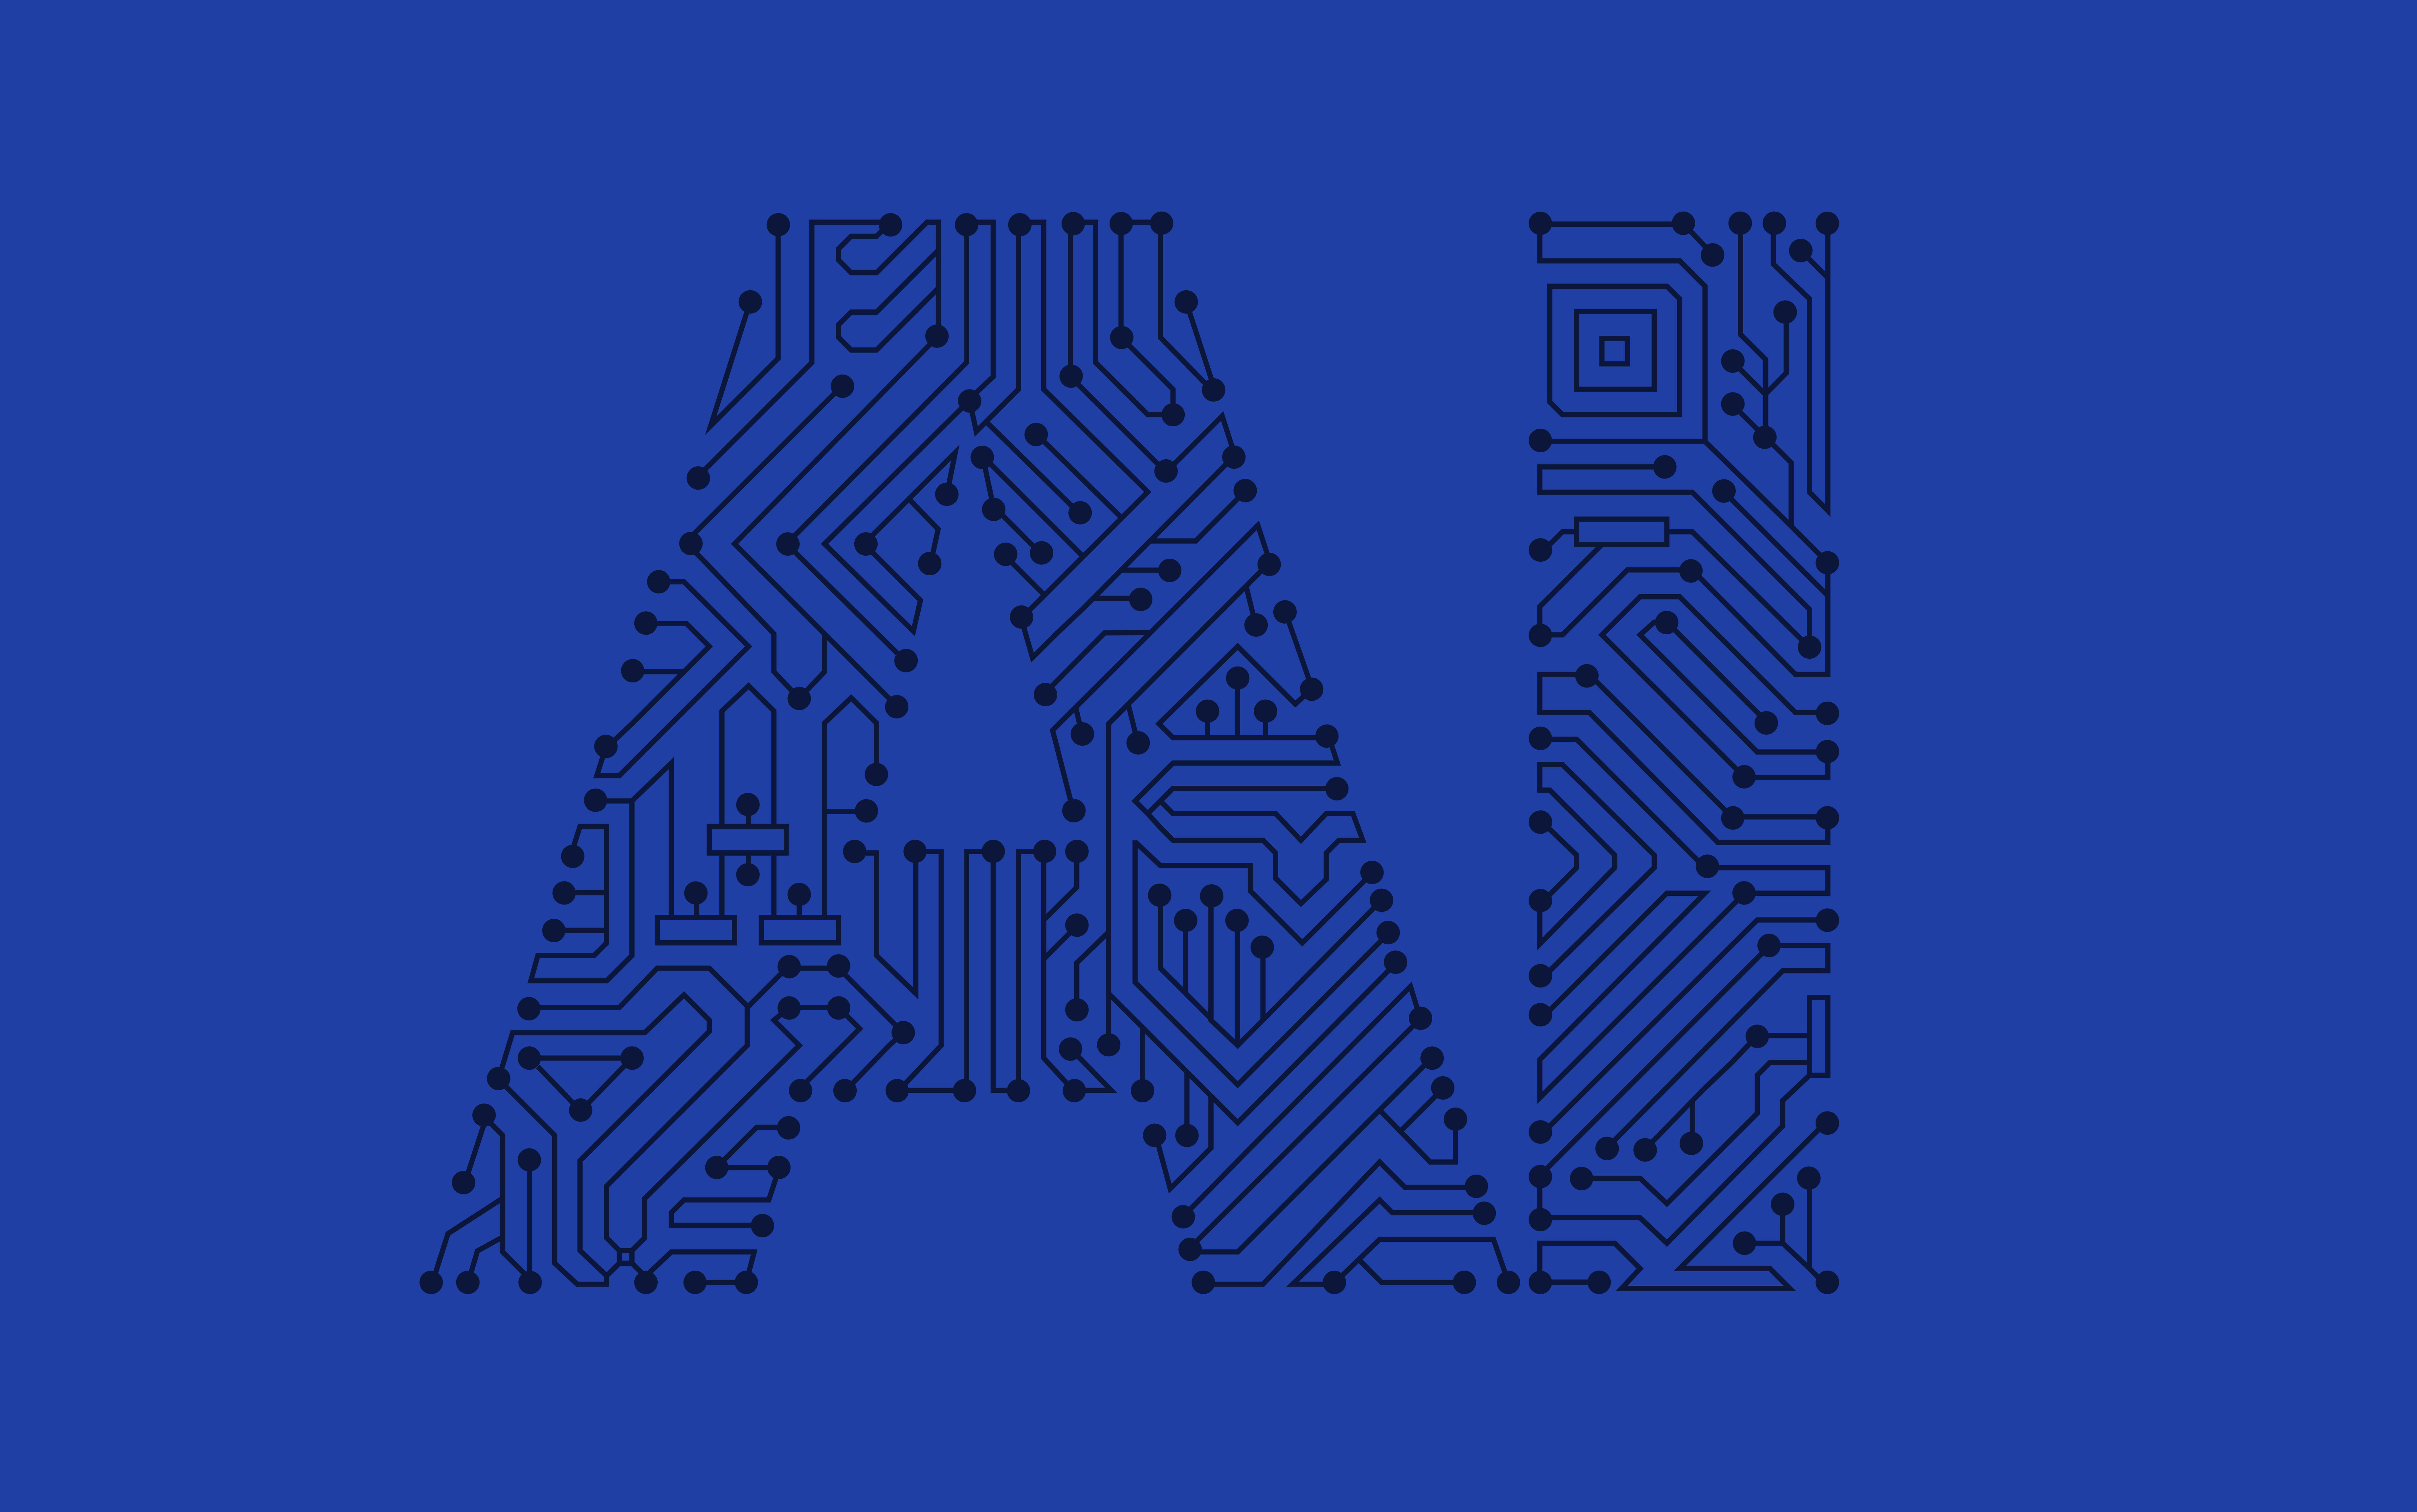 Criminal Justice AI - Image a blue background with AI written on it